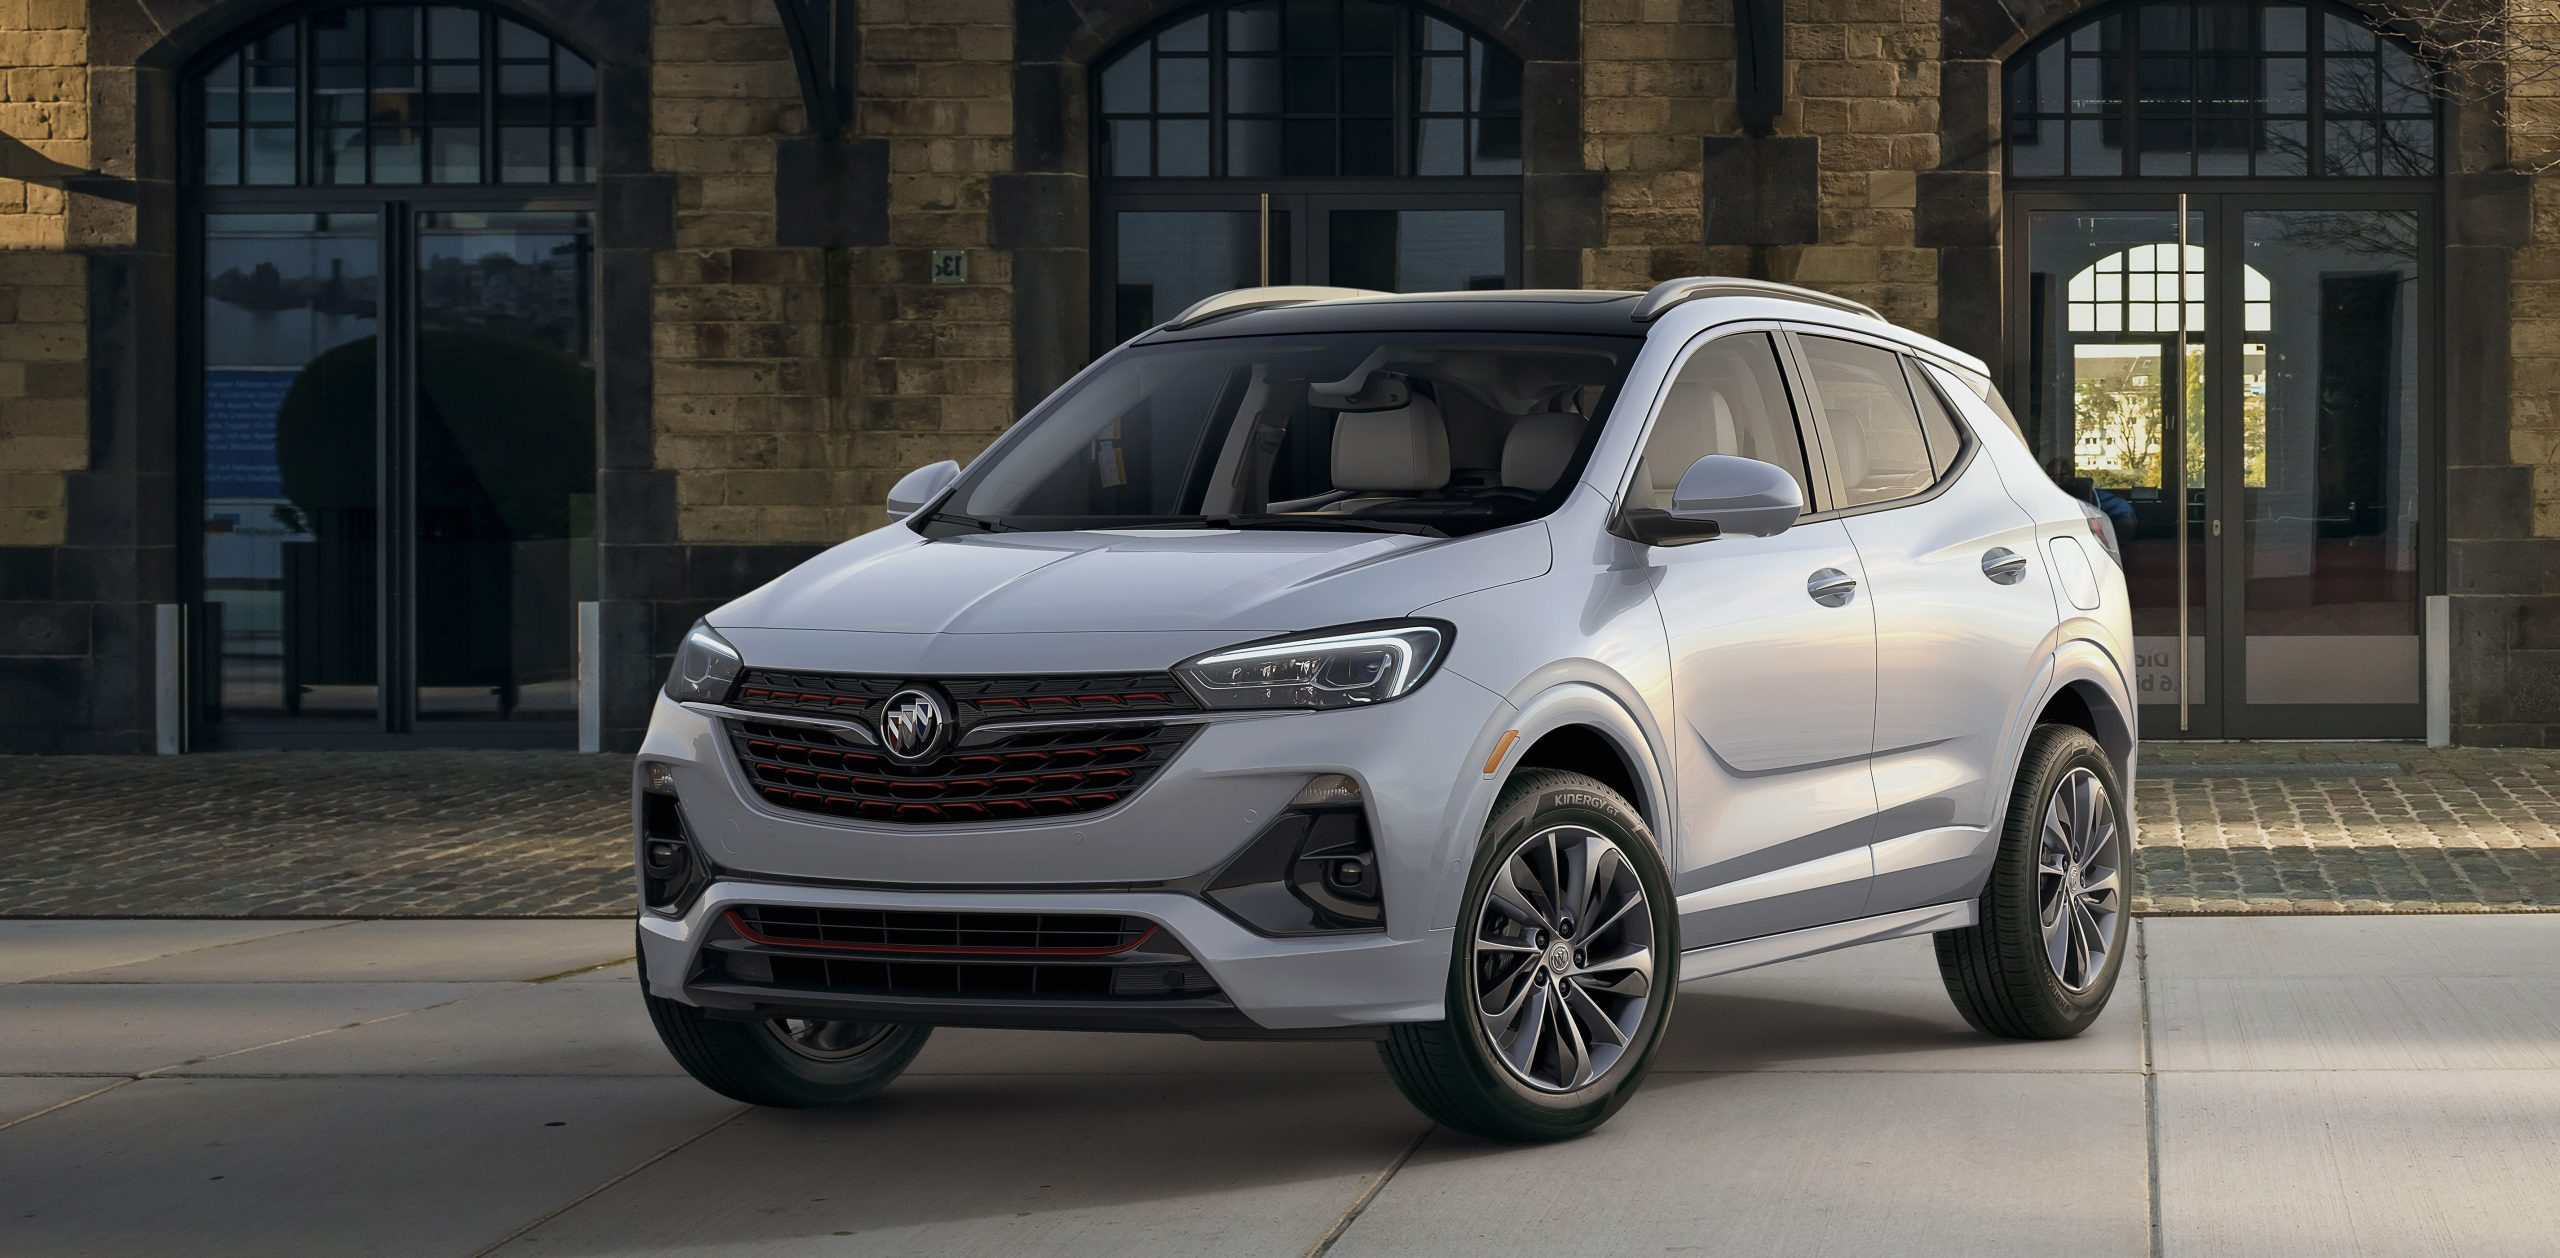 2020 Buick Encore Gx: What We Know So Far How Long Is The 2021 Buick Encore Gx